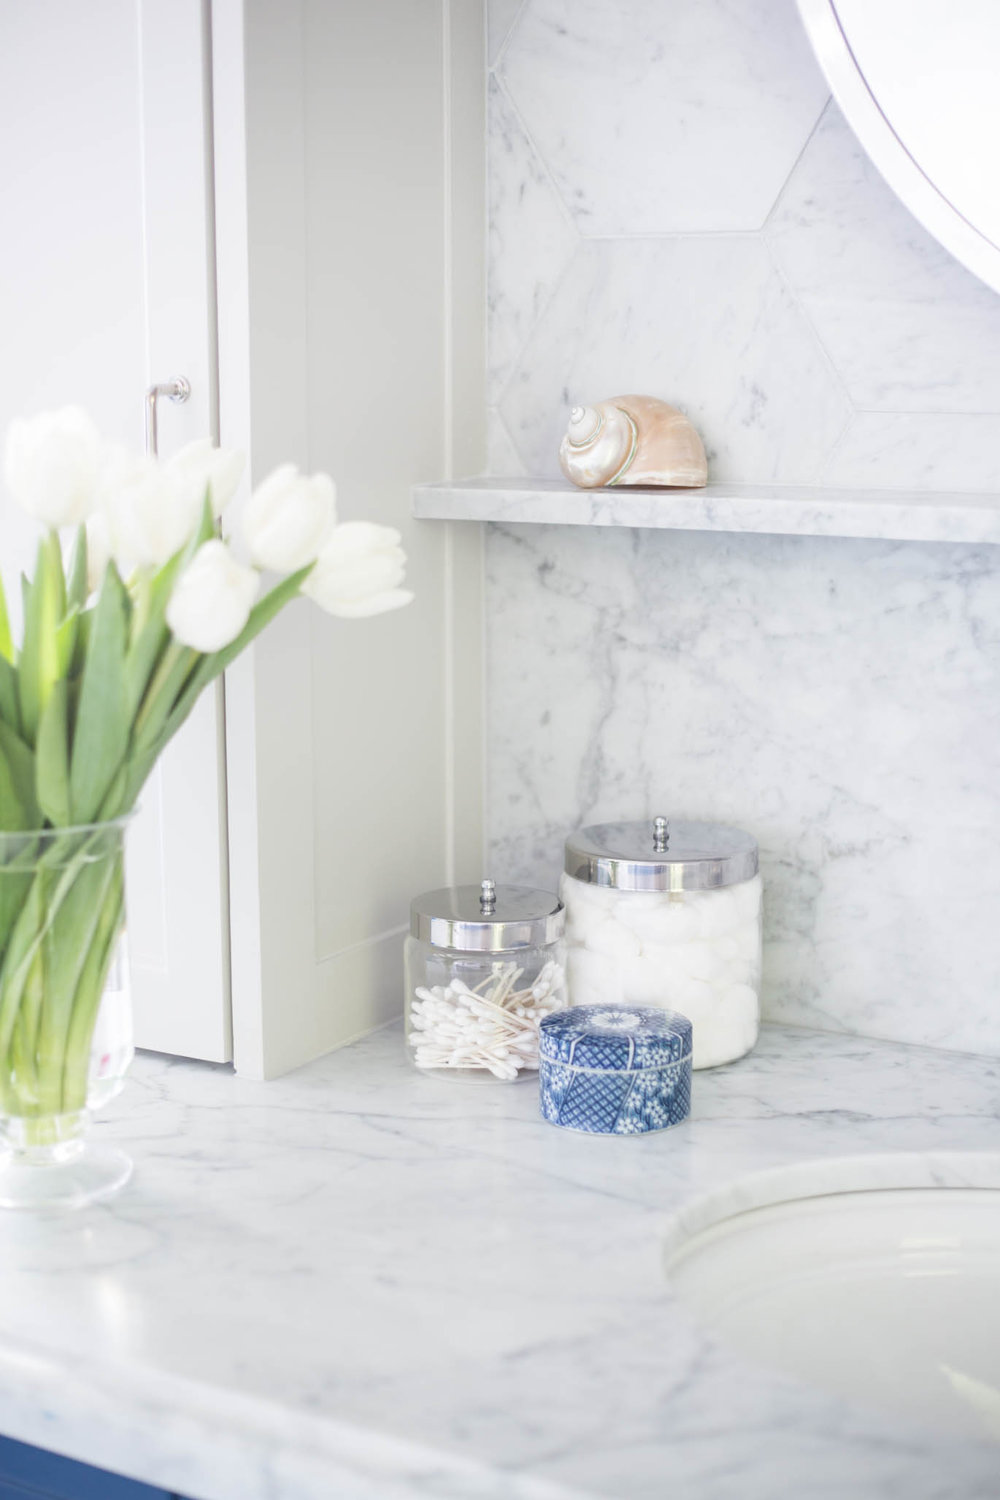 Good Marble ledge at bathroom sink Carla Aston Designer Tori Aston Photographer